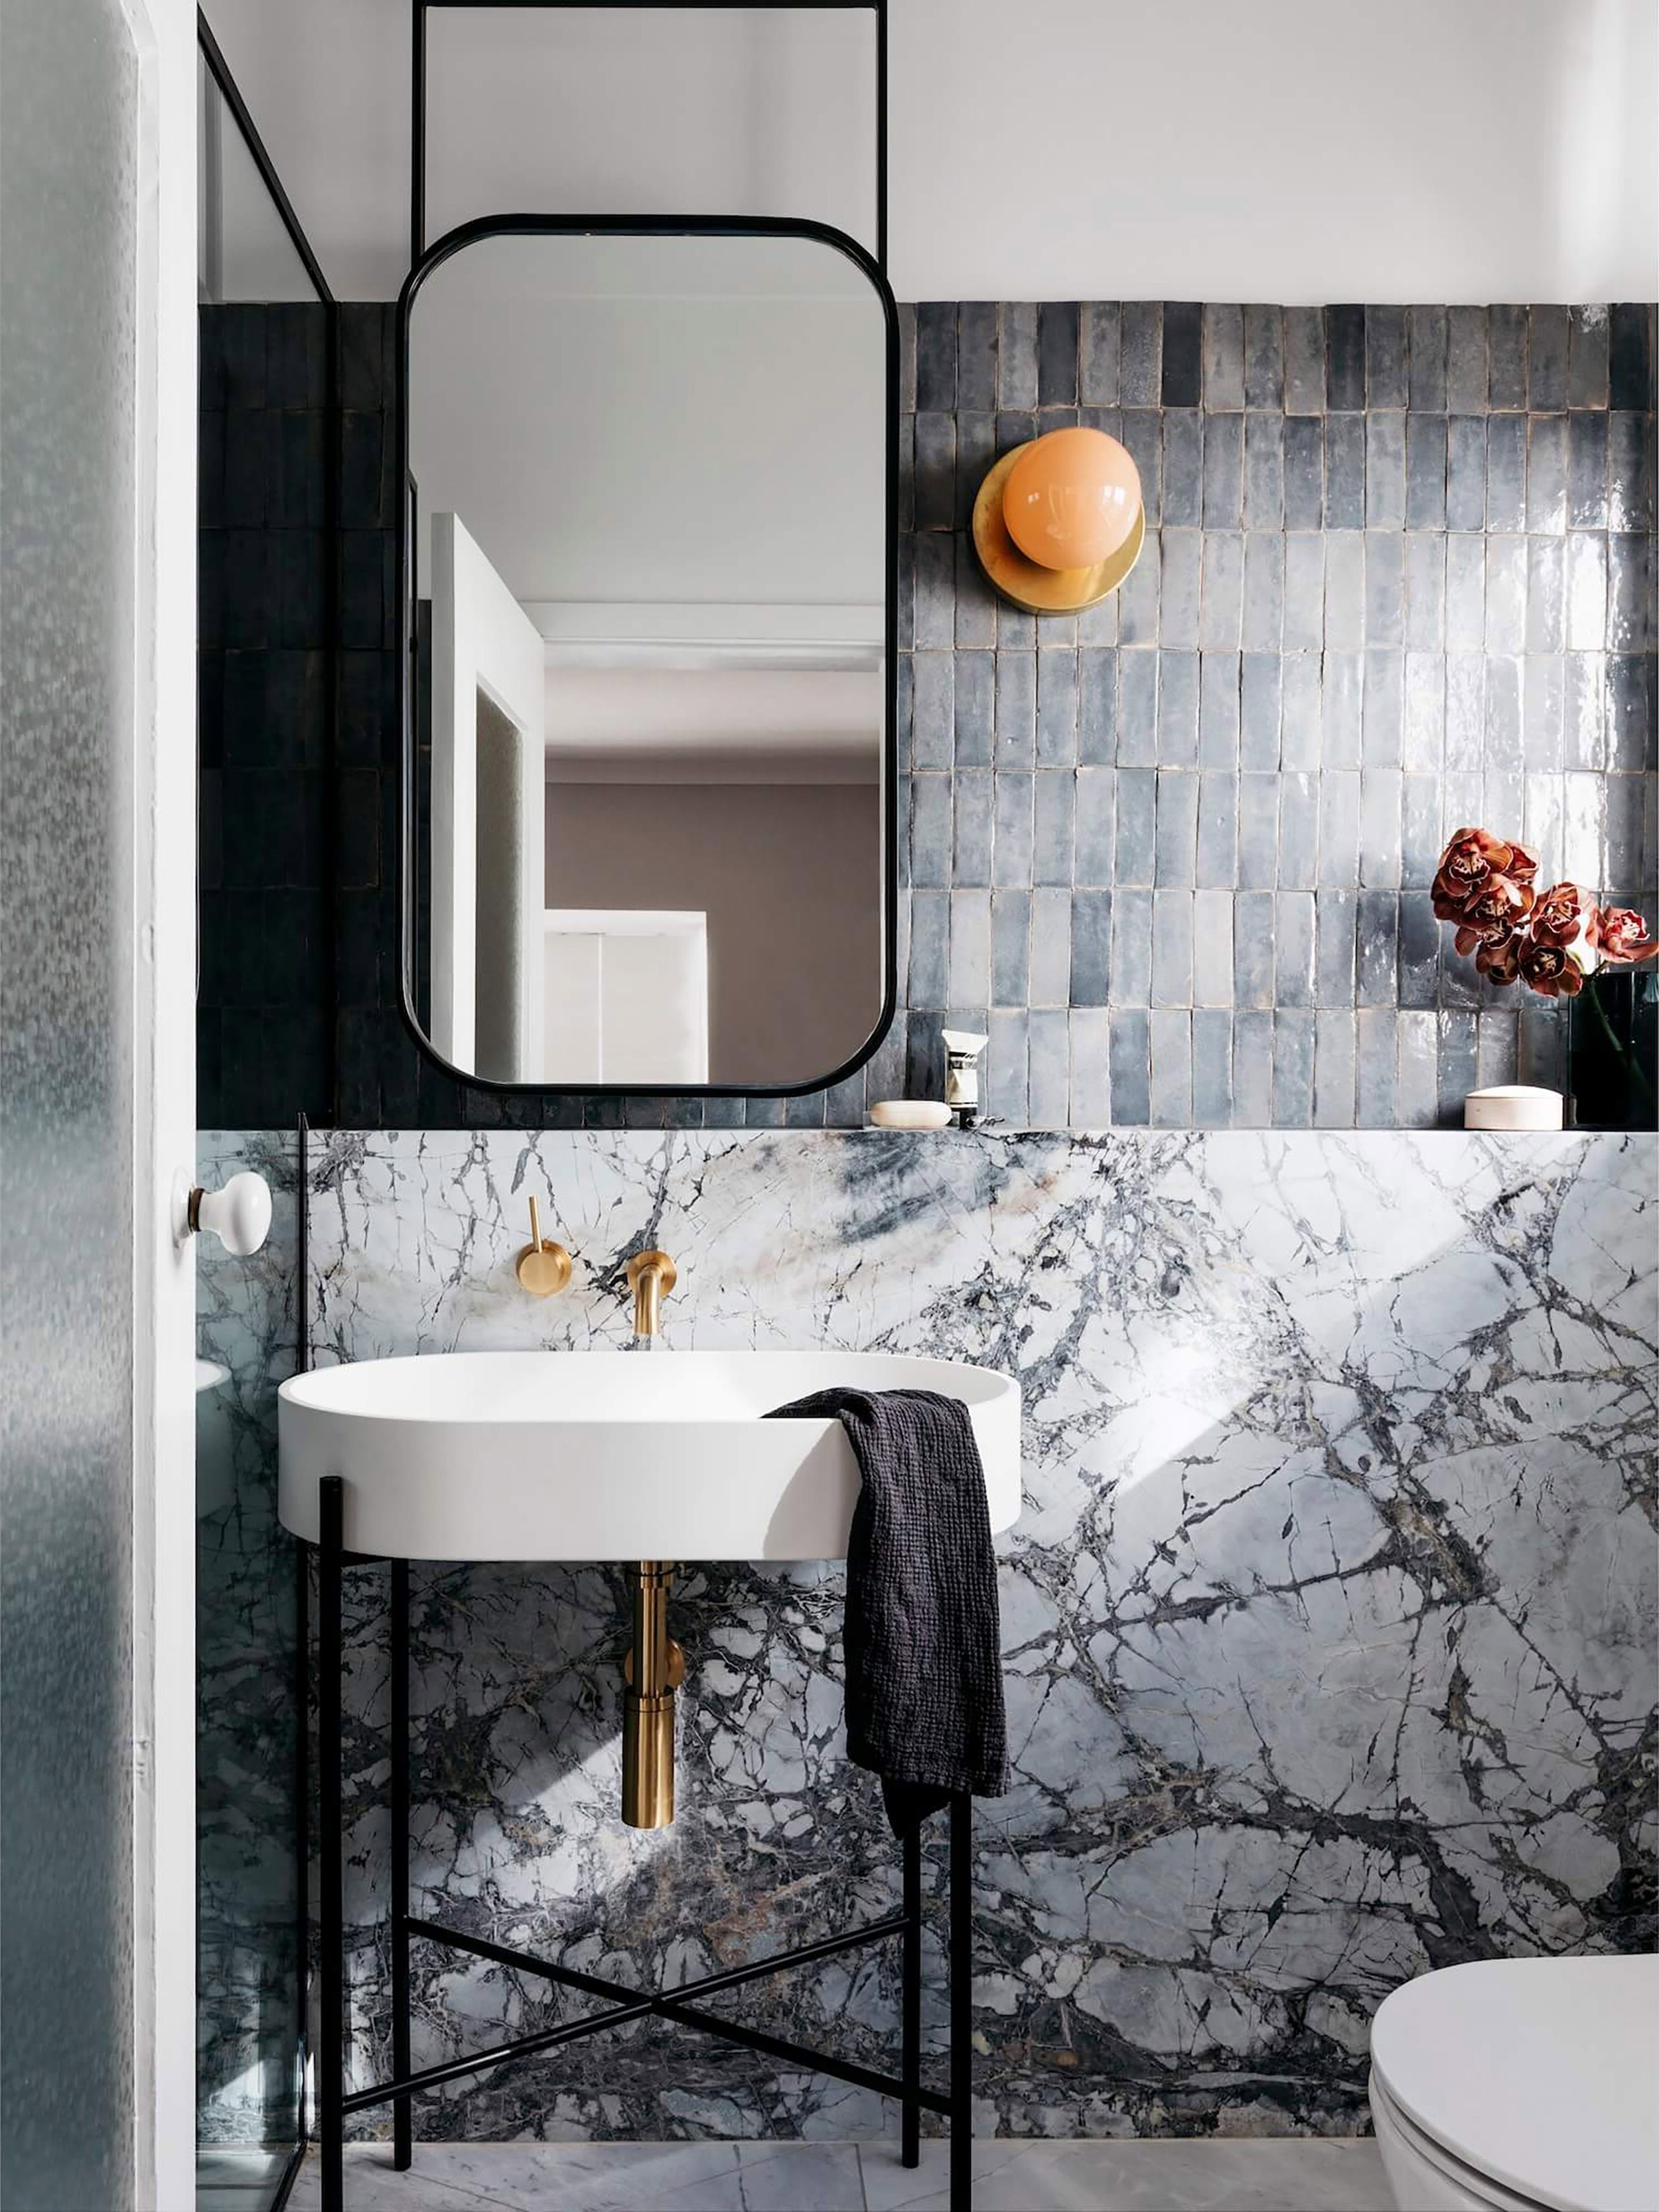 Popular Triple Oval Wall Mirrors In 17 Fresh & Inspiring Bathroom Mirror Ideas To Shake Up Your (View 16 of 20)